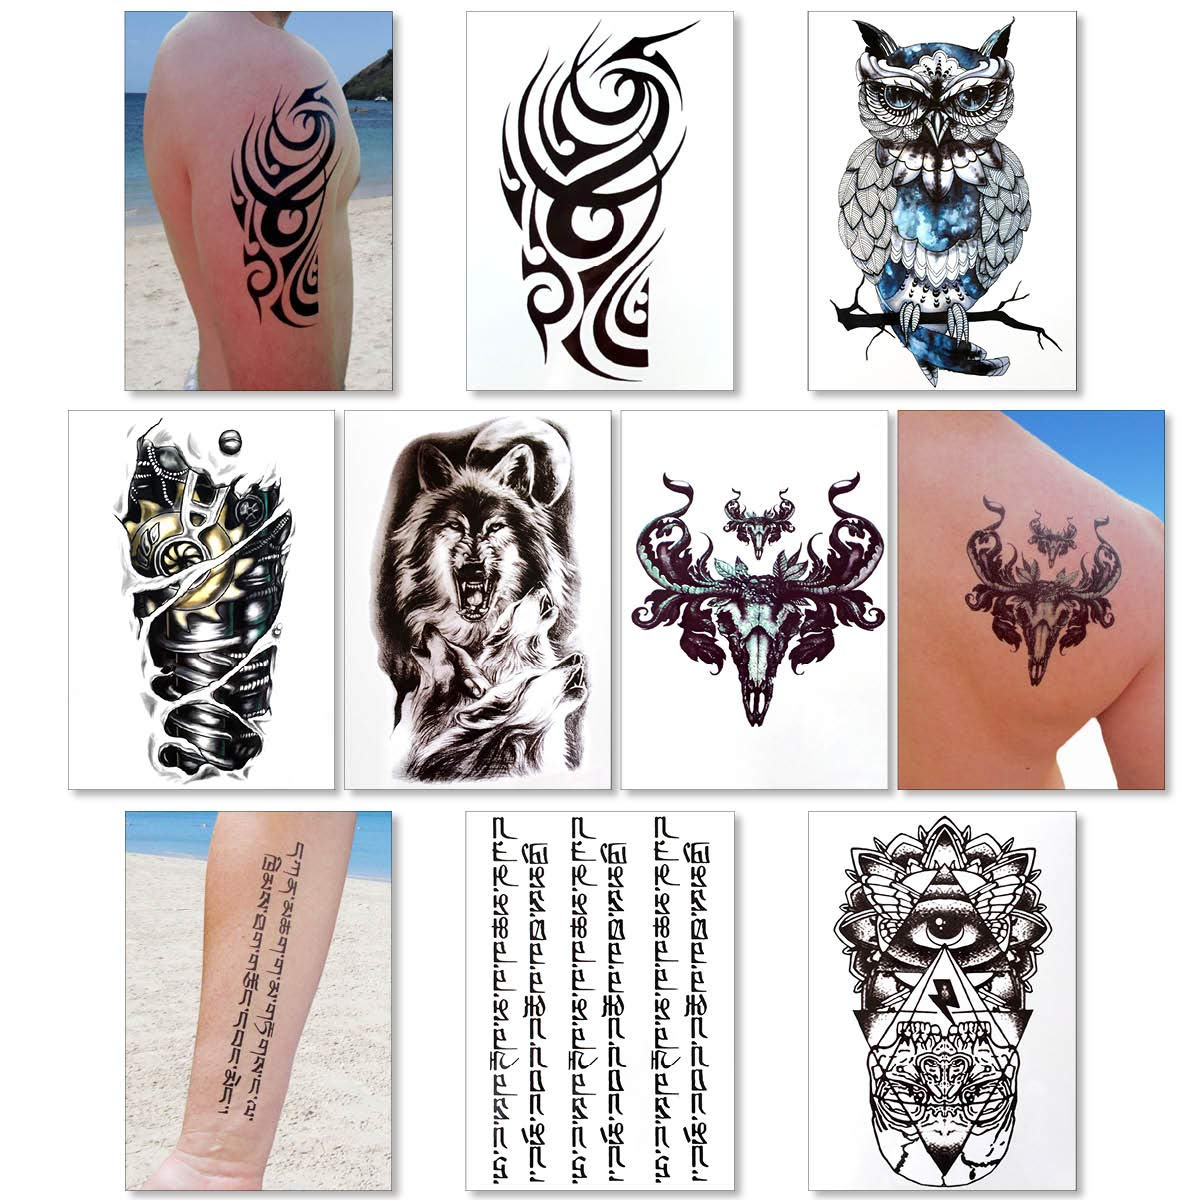 Amazon Com Temporary Tattoos For Men Guys Teens Fake Tattoo Stickers 8 Large Sheets Tattoos For Boys Biker Tattoos Rocker Transfers For Arms Shoulders Chest Back Body Art Tattoo See more ideas about guys, tattoos for guys, tattoos. temporary tattoos for men guys teens fake tattoo stickers 8 large sheets tattoos for boys biker tattoos rocker transfers for arms shoulders chest